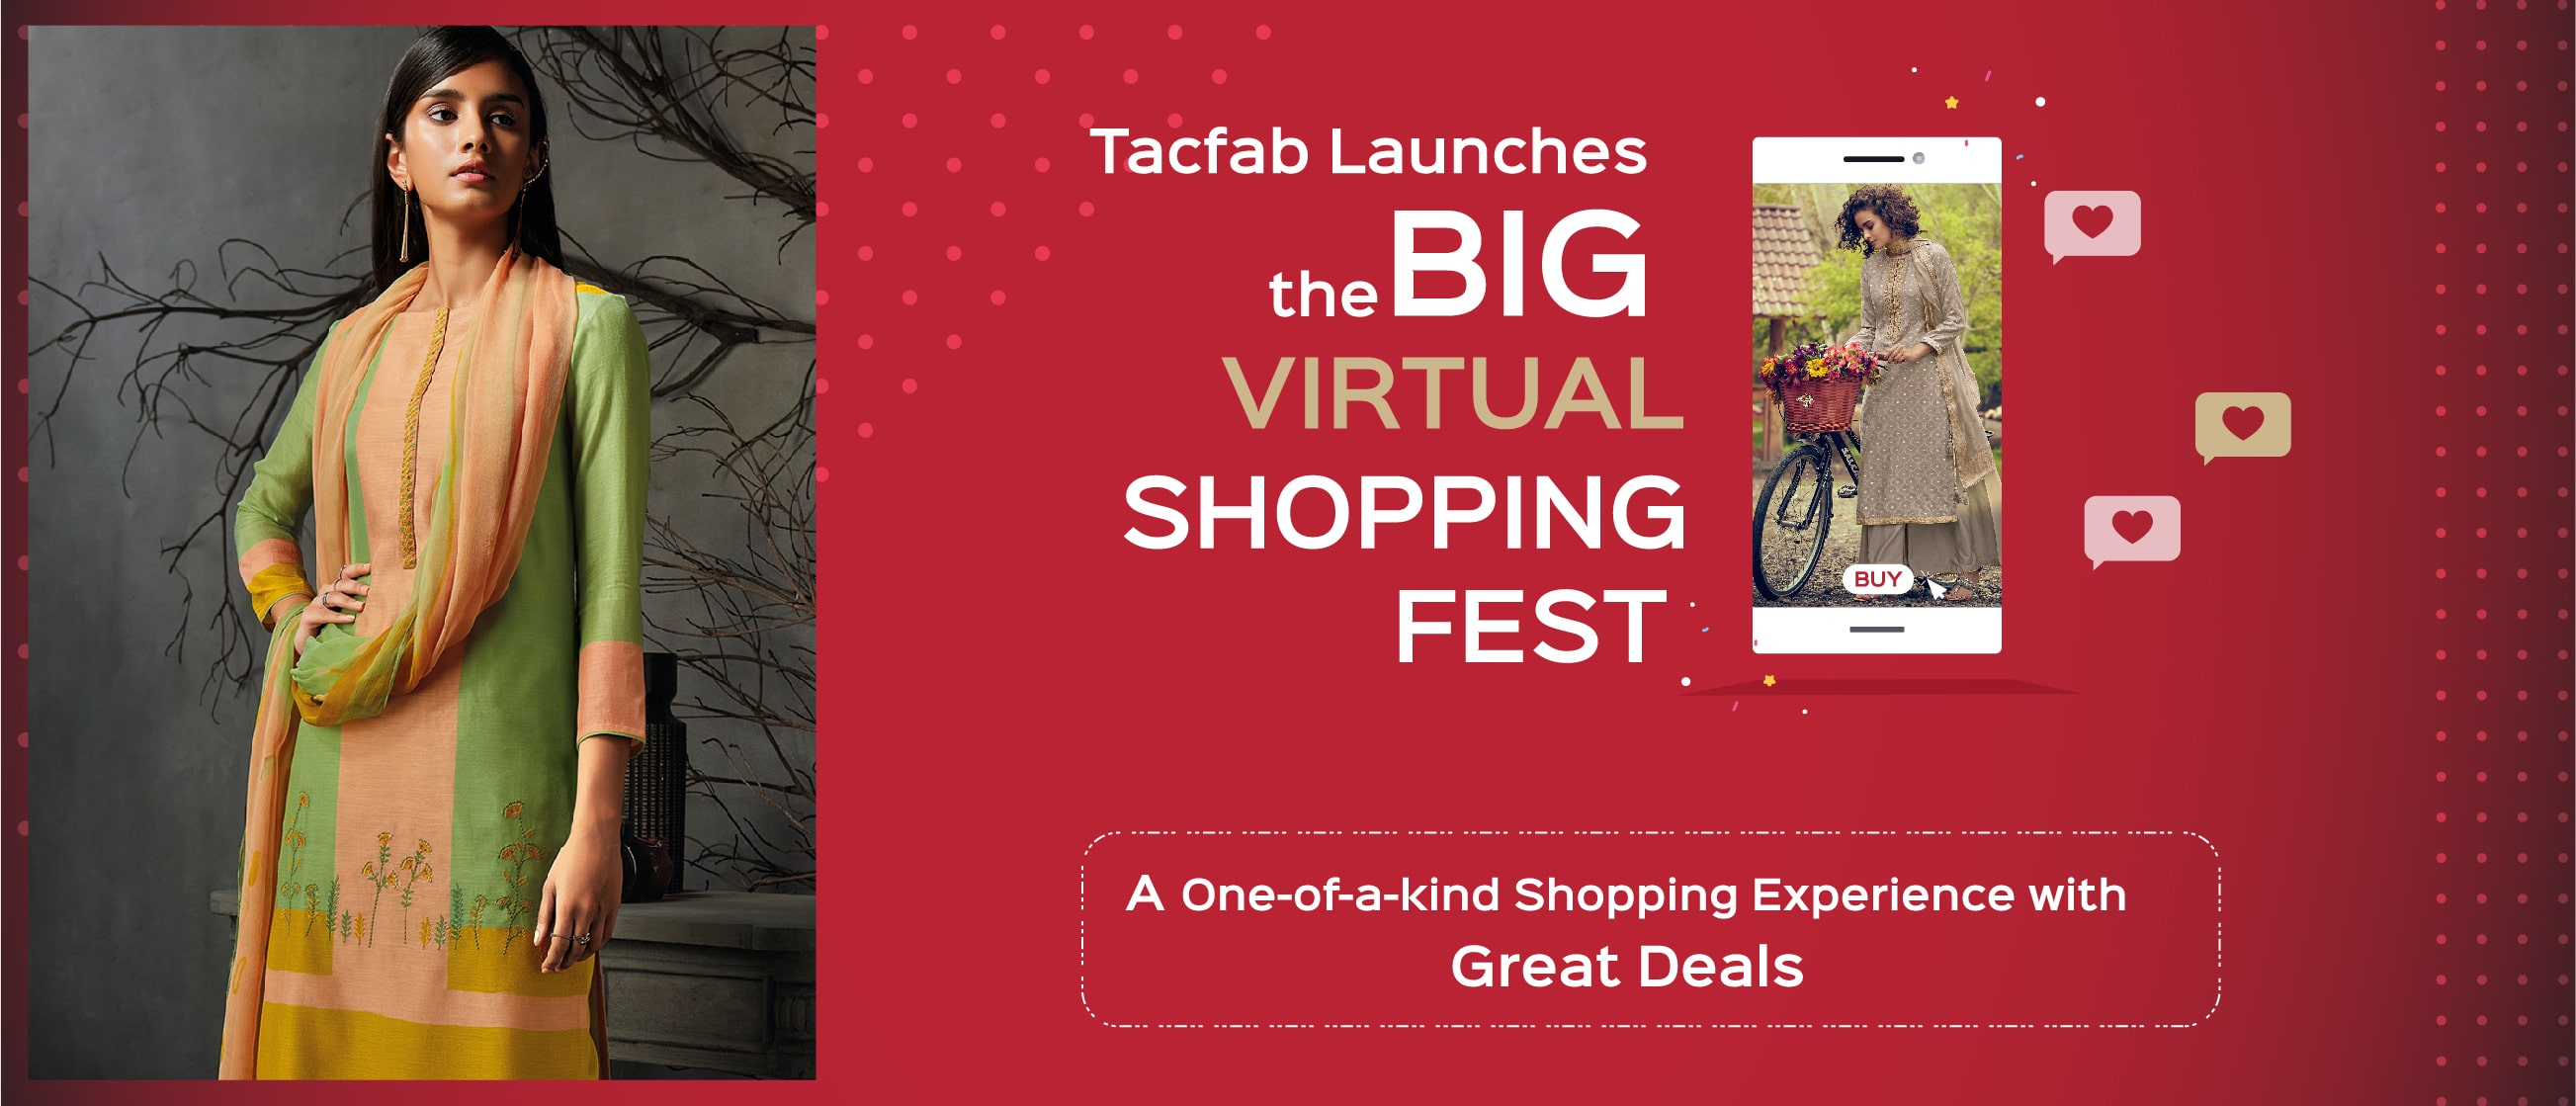 Tacfab Launches the Big Virtual Shopping Festival, a One-of-a-kind Shopping Experience with Great Deals